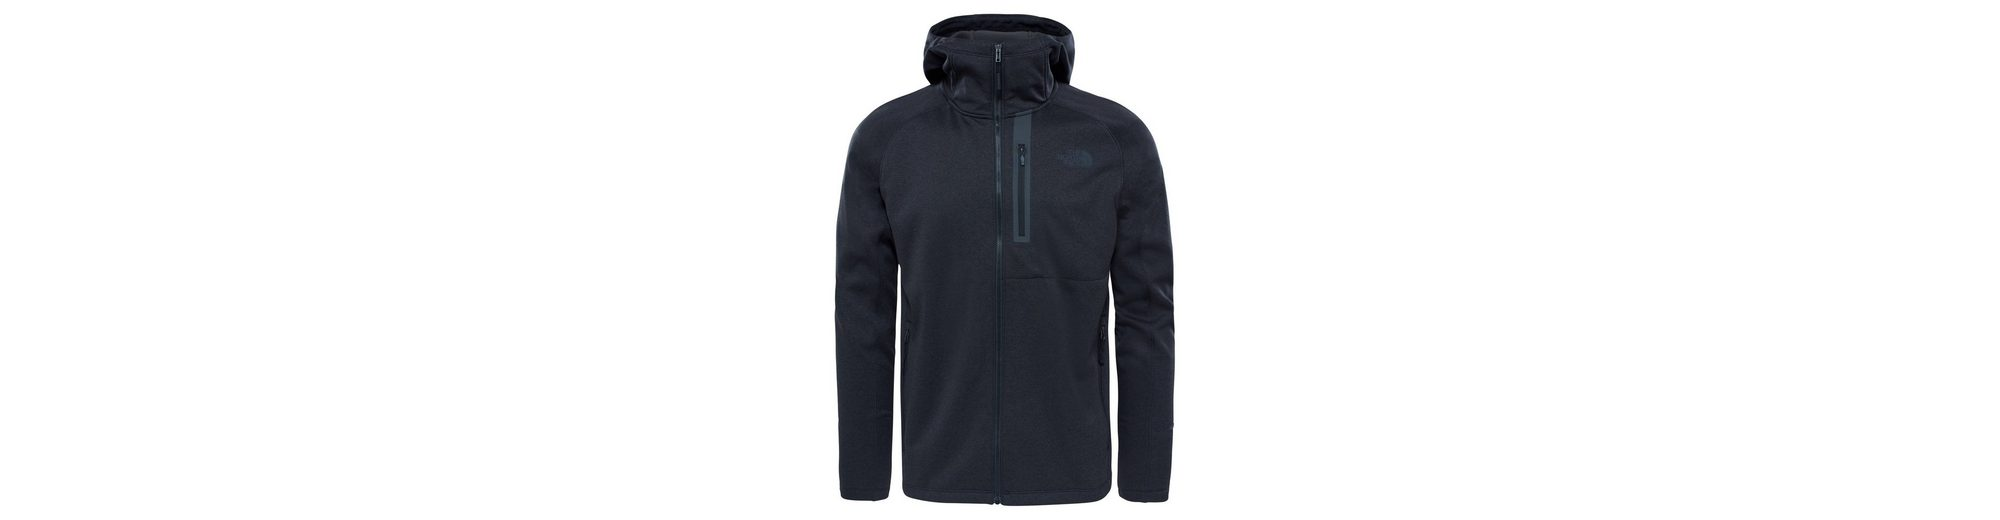 Billig Besuch The North Face Outdoorjacke Eastbay eI72ouErEO